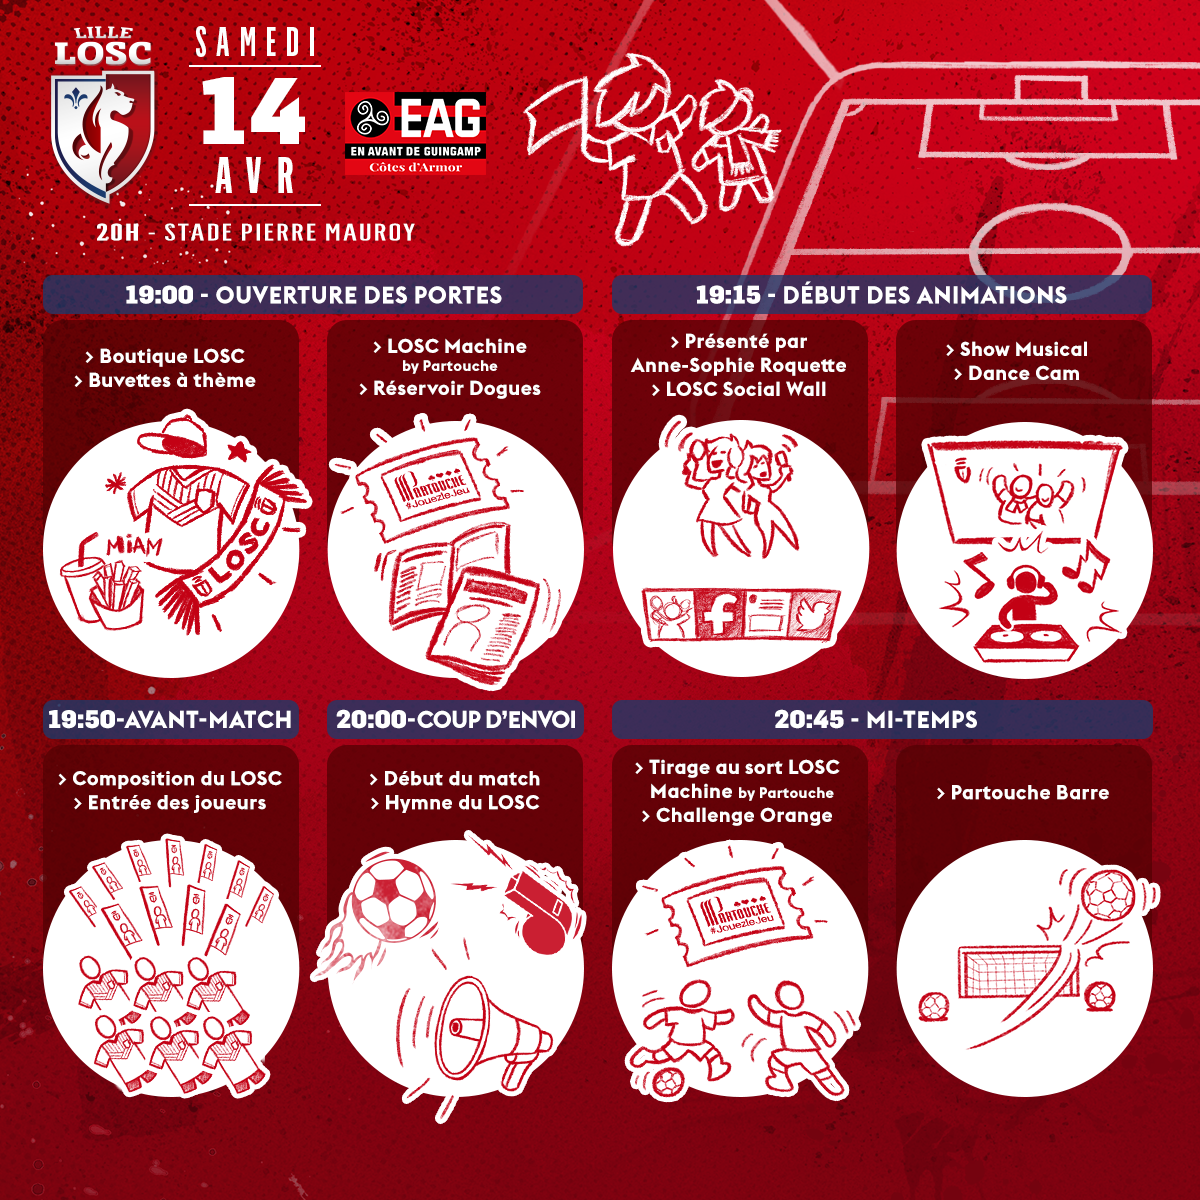 INFOGRAPHIE_SupporterAuStade_EAG_v2_0.png